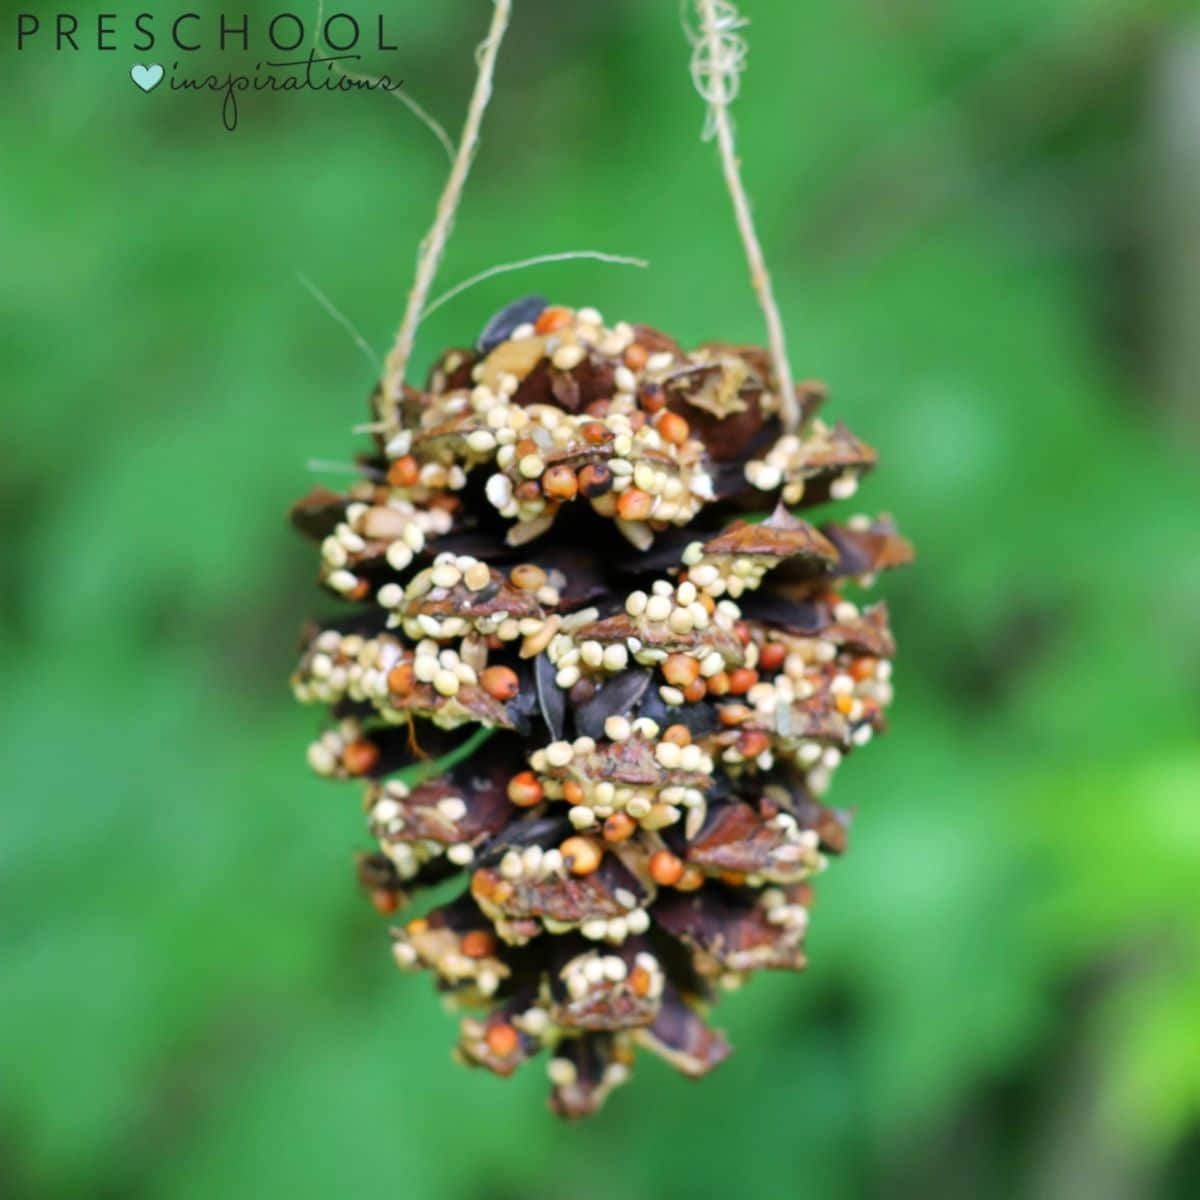 a pine cone filled with seeds hangs from the top of the photo